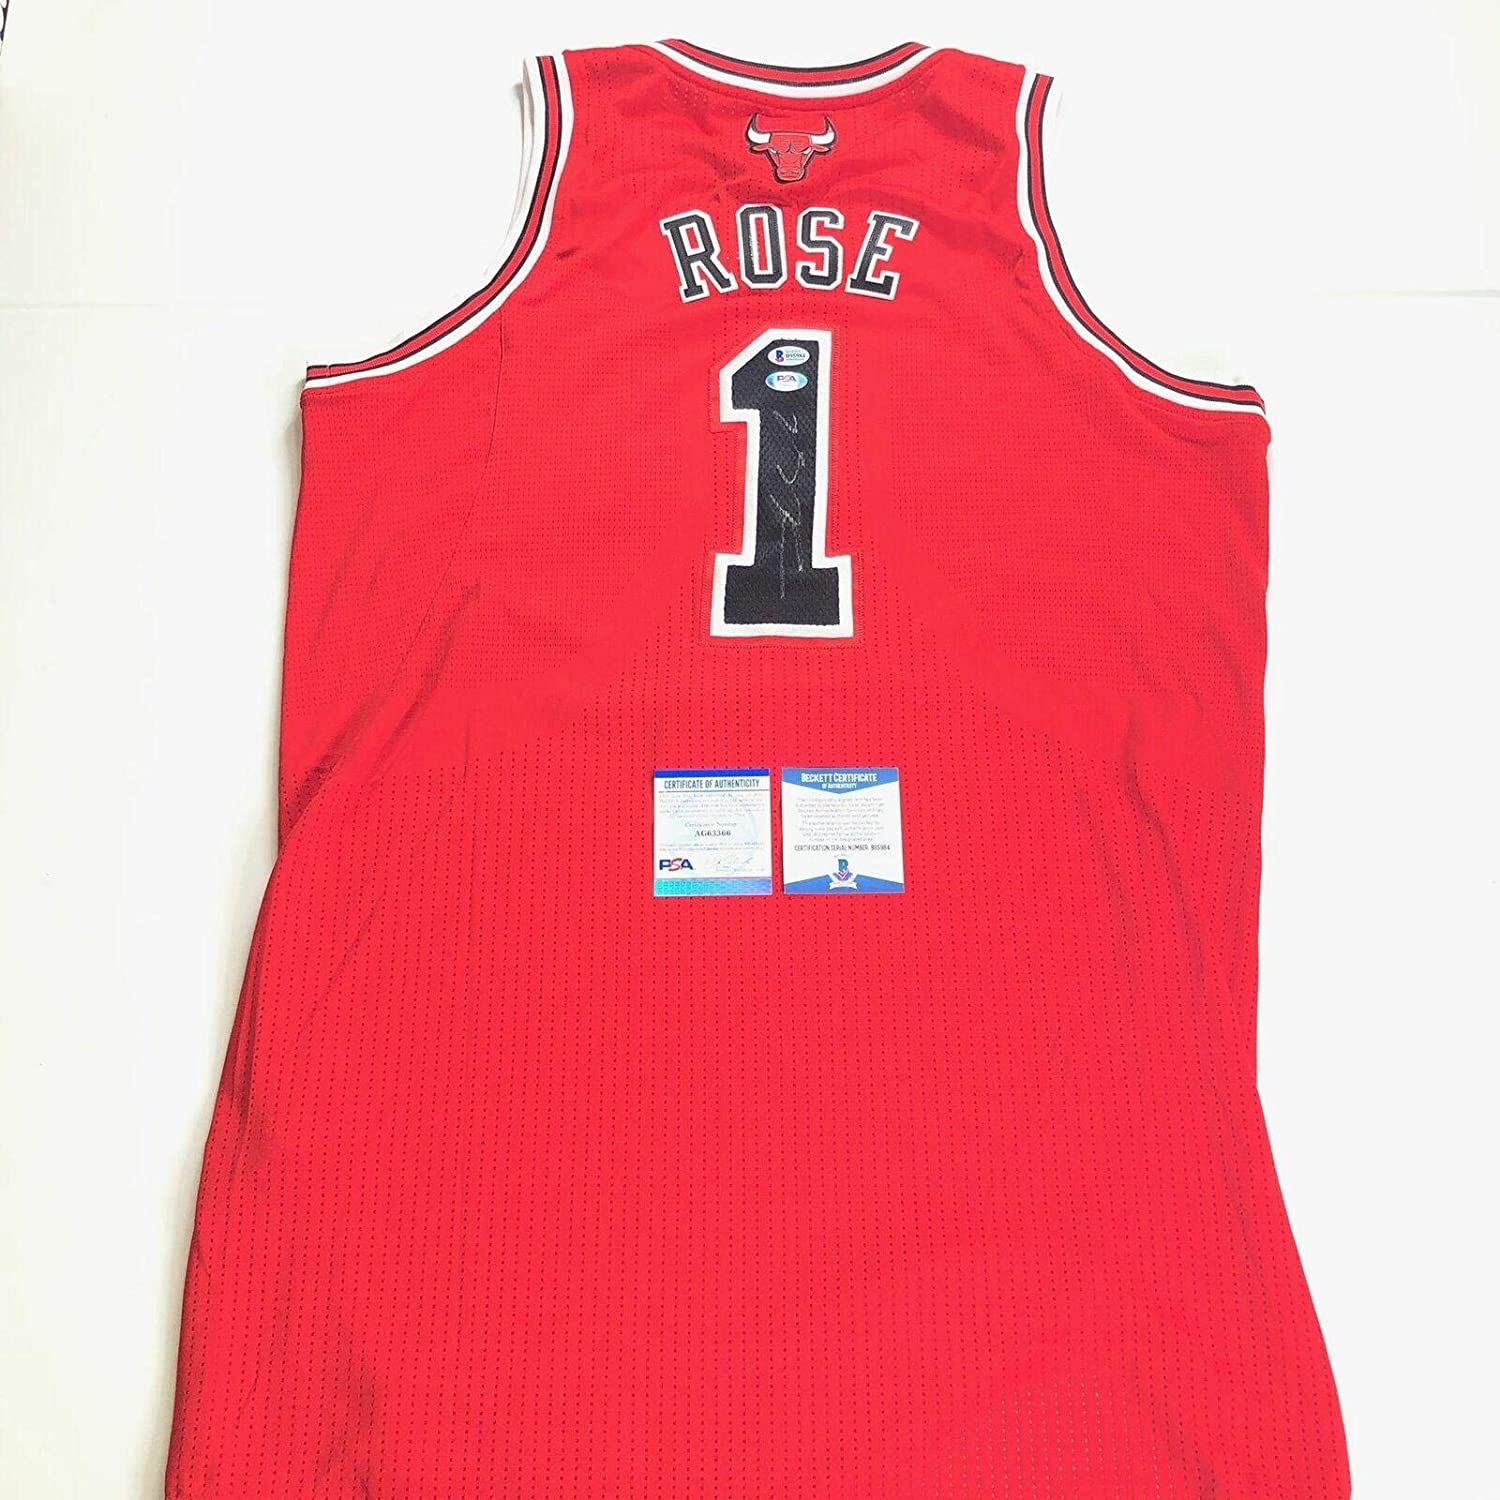 Derrick Rose signed 2010-11 REV 30 jersey Autographed PSA/DNA Beckett Bulls - Autographed NBA Jerseys